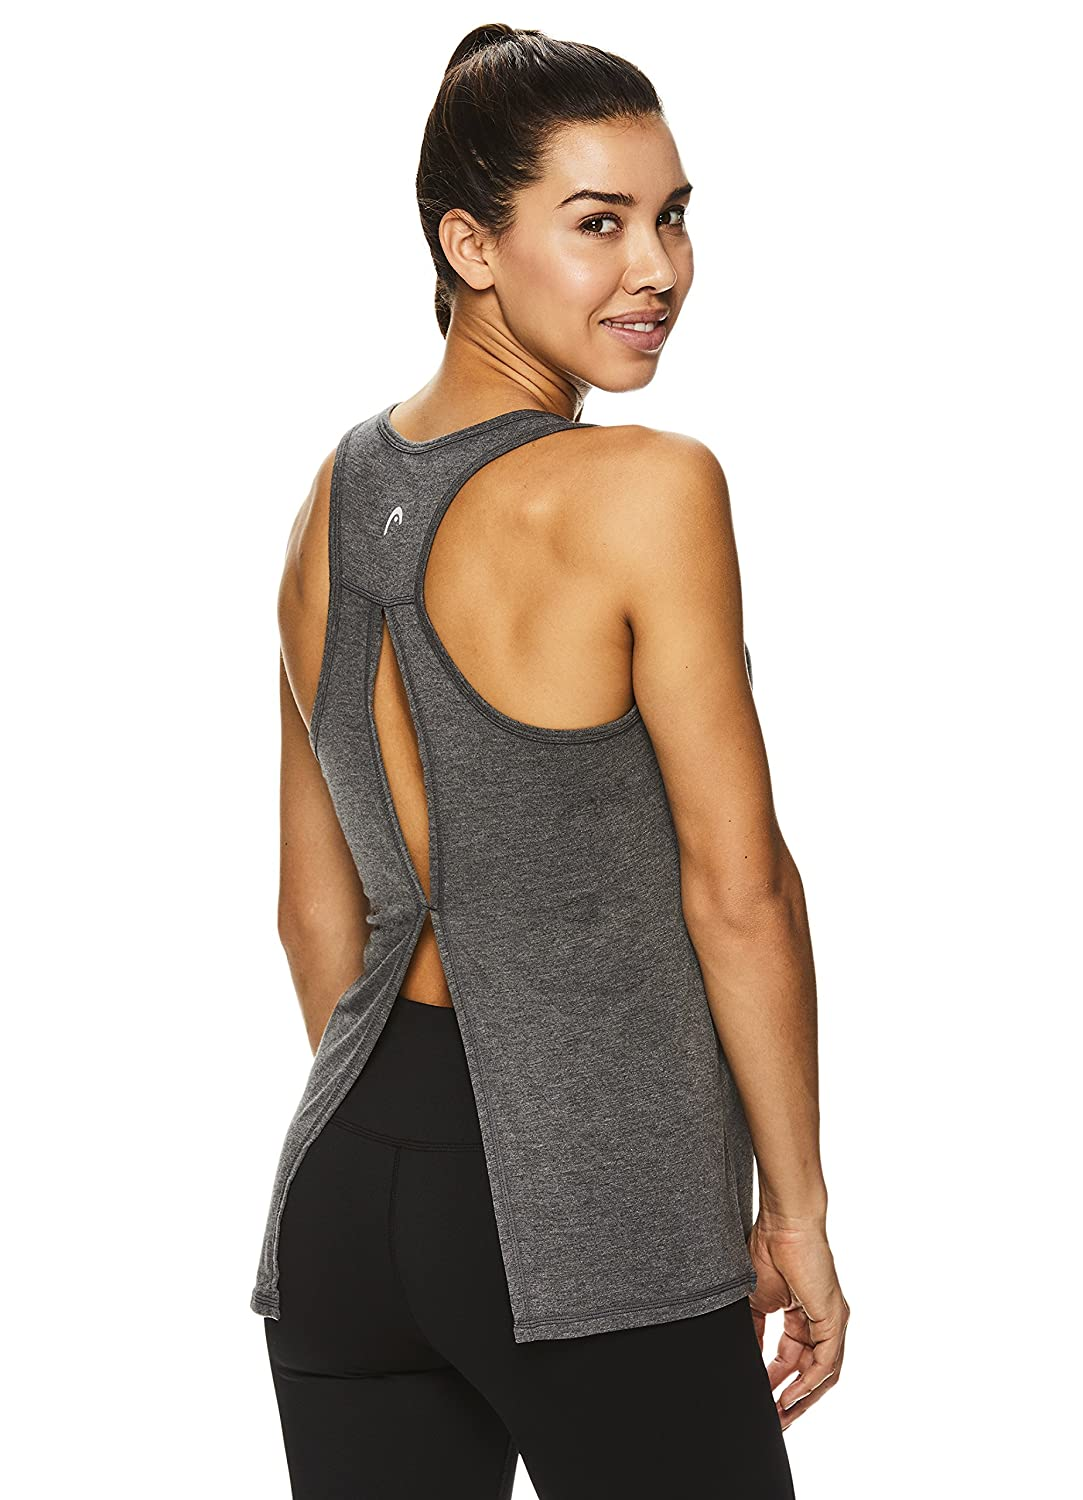 f07164cf6f6bd HEAD Women s Racerback Workout Tank Top - Ladies Activewear Shirt w Open  Back Detail at Amazon Women s Clothing store